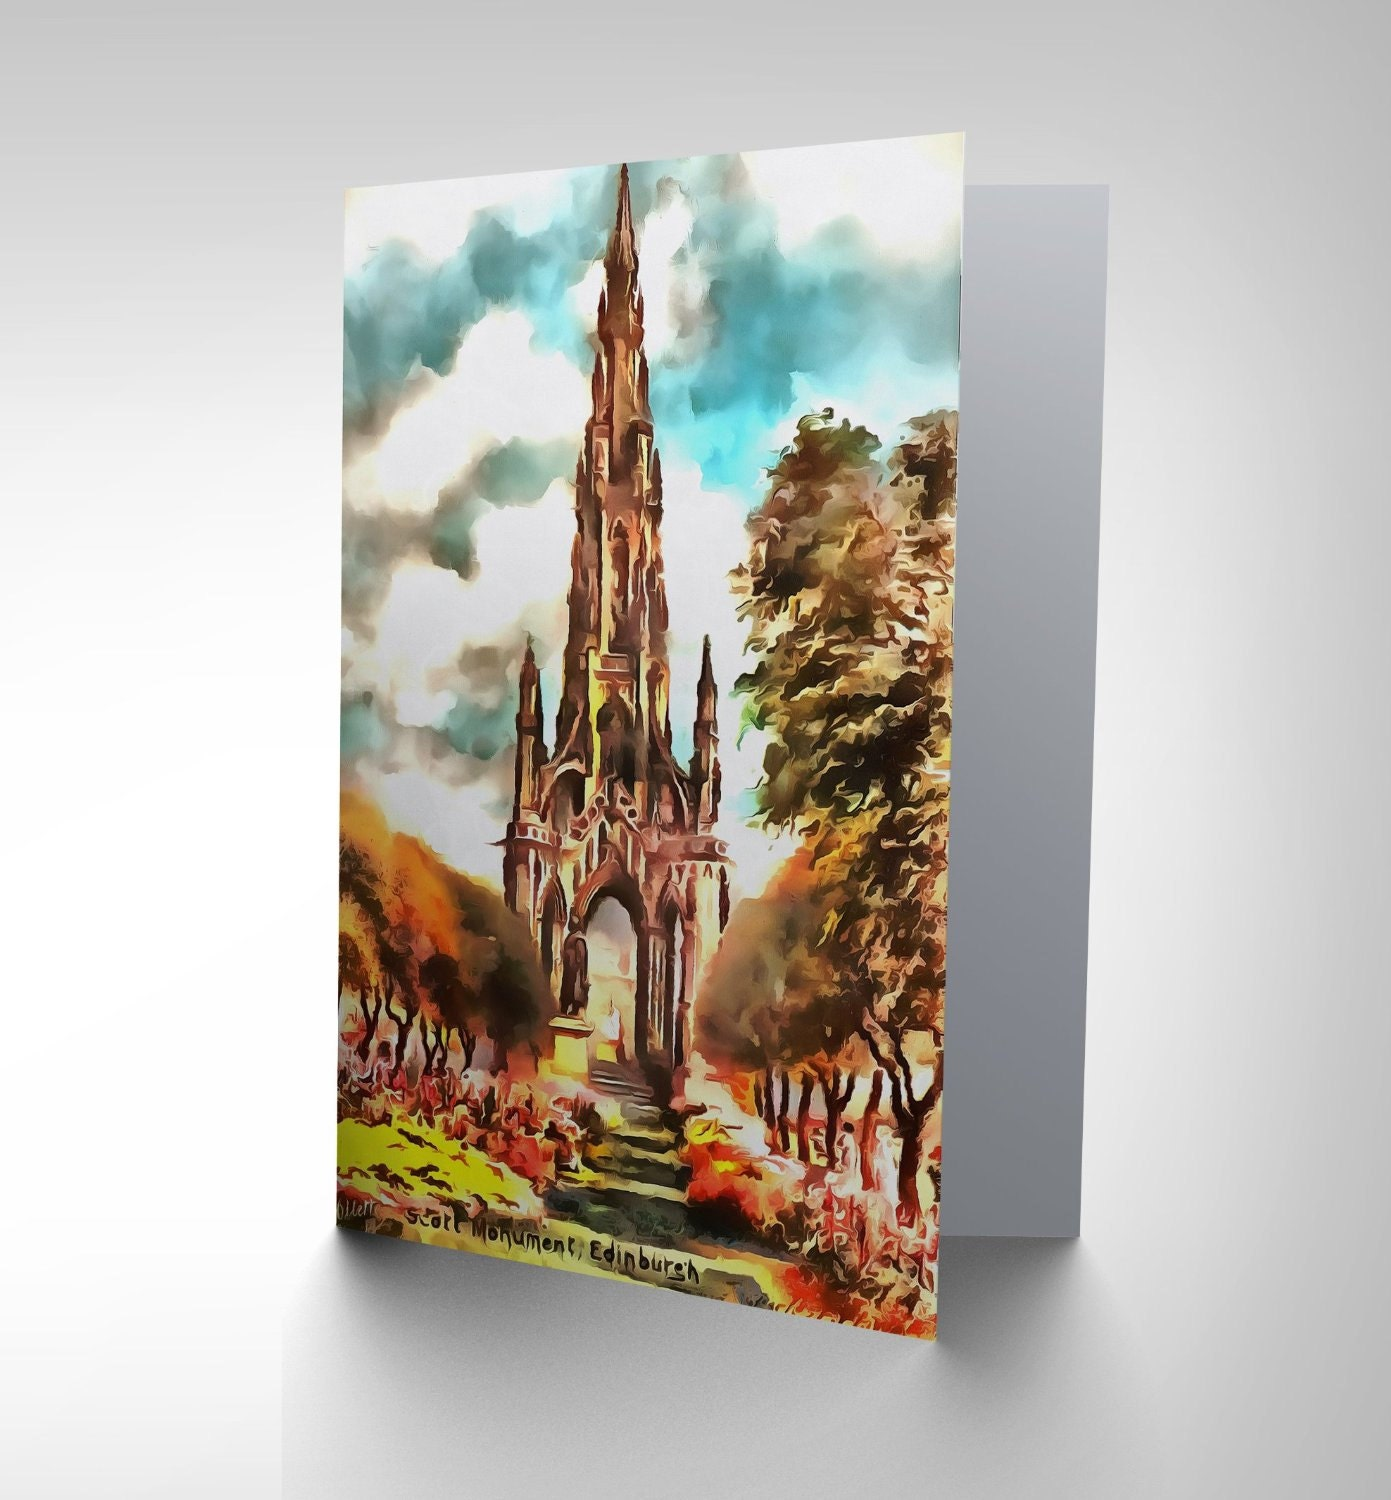 Edinburgh Card Scott Monument City View Birthday Blank